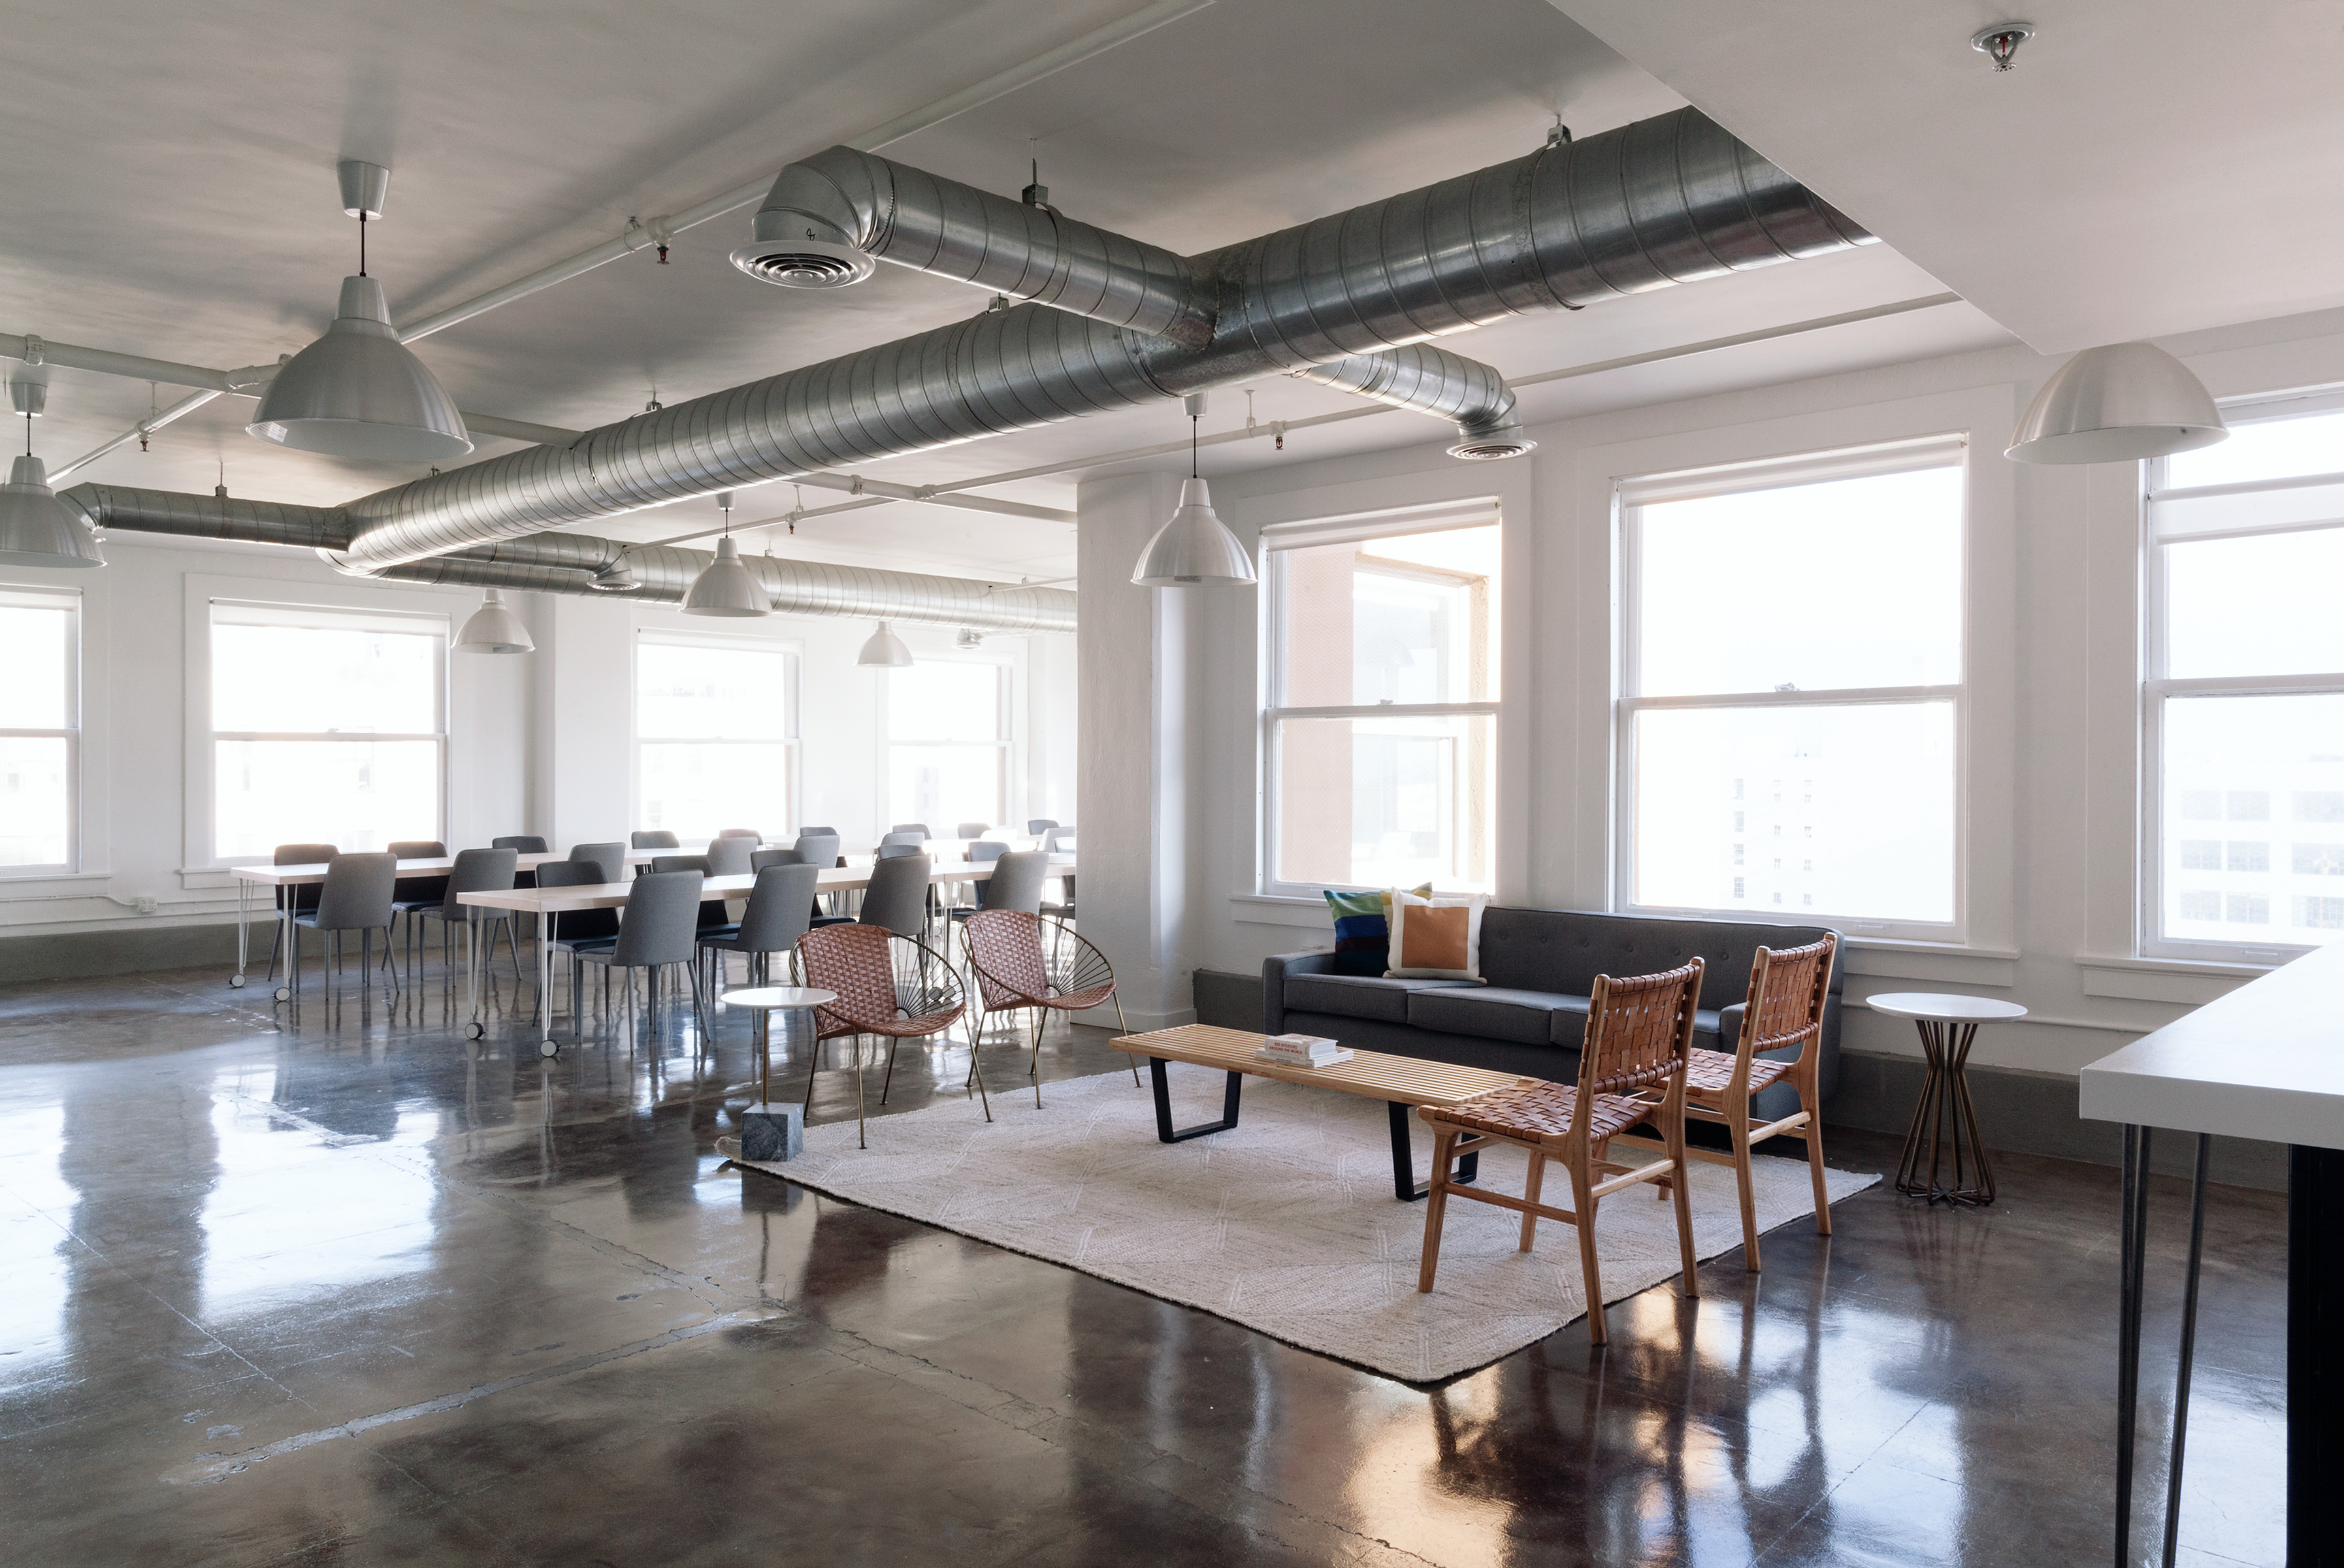 Meeting Rooms in Los Angeles: Hourly Office Space Rentals | Breather